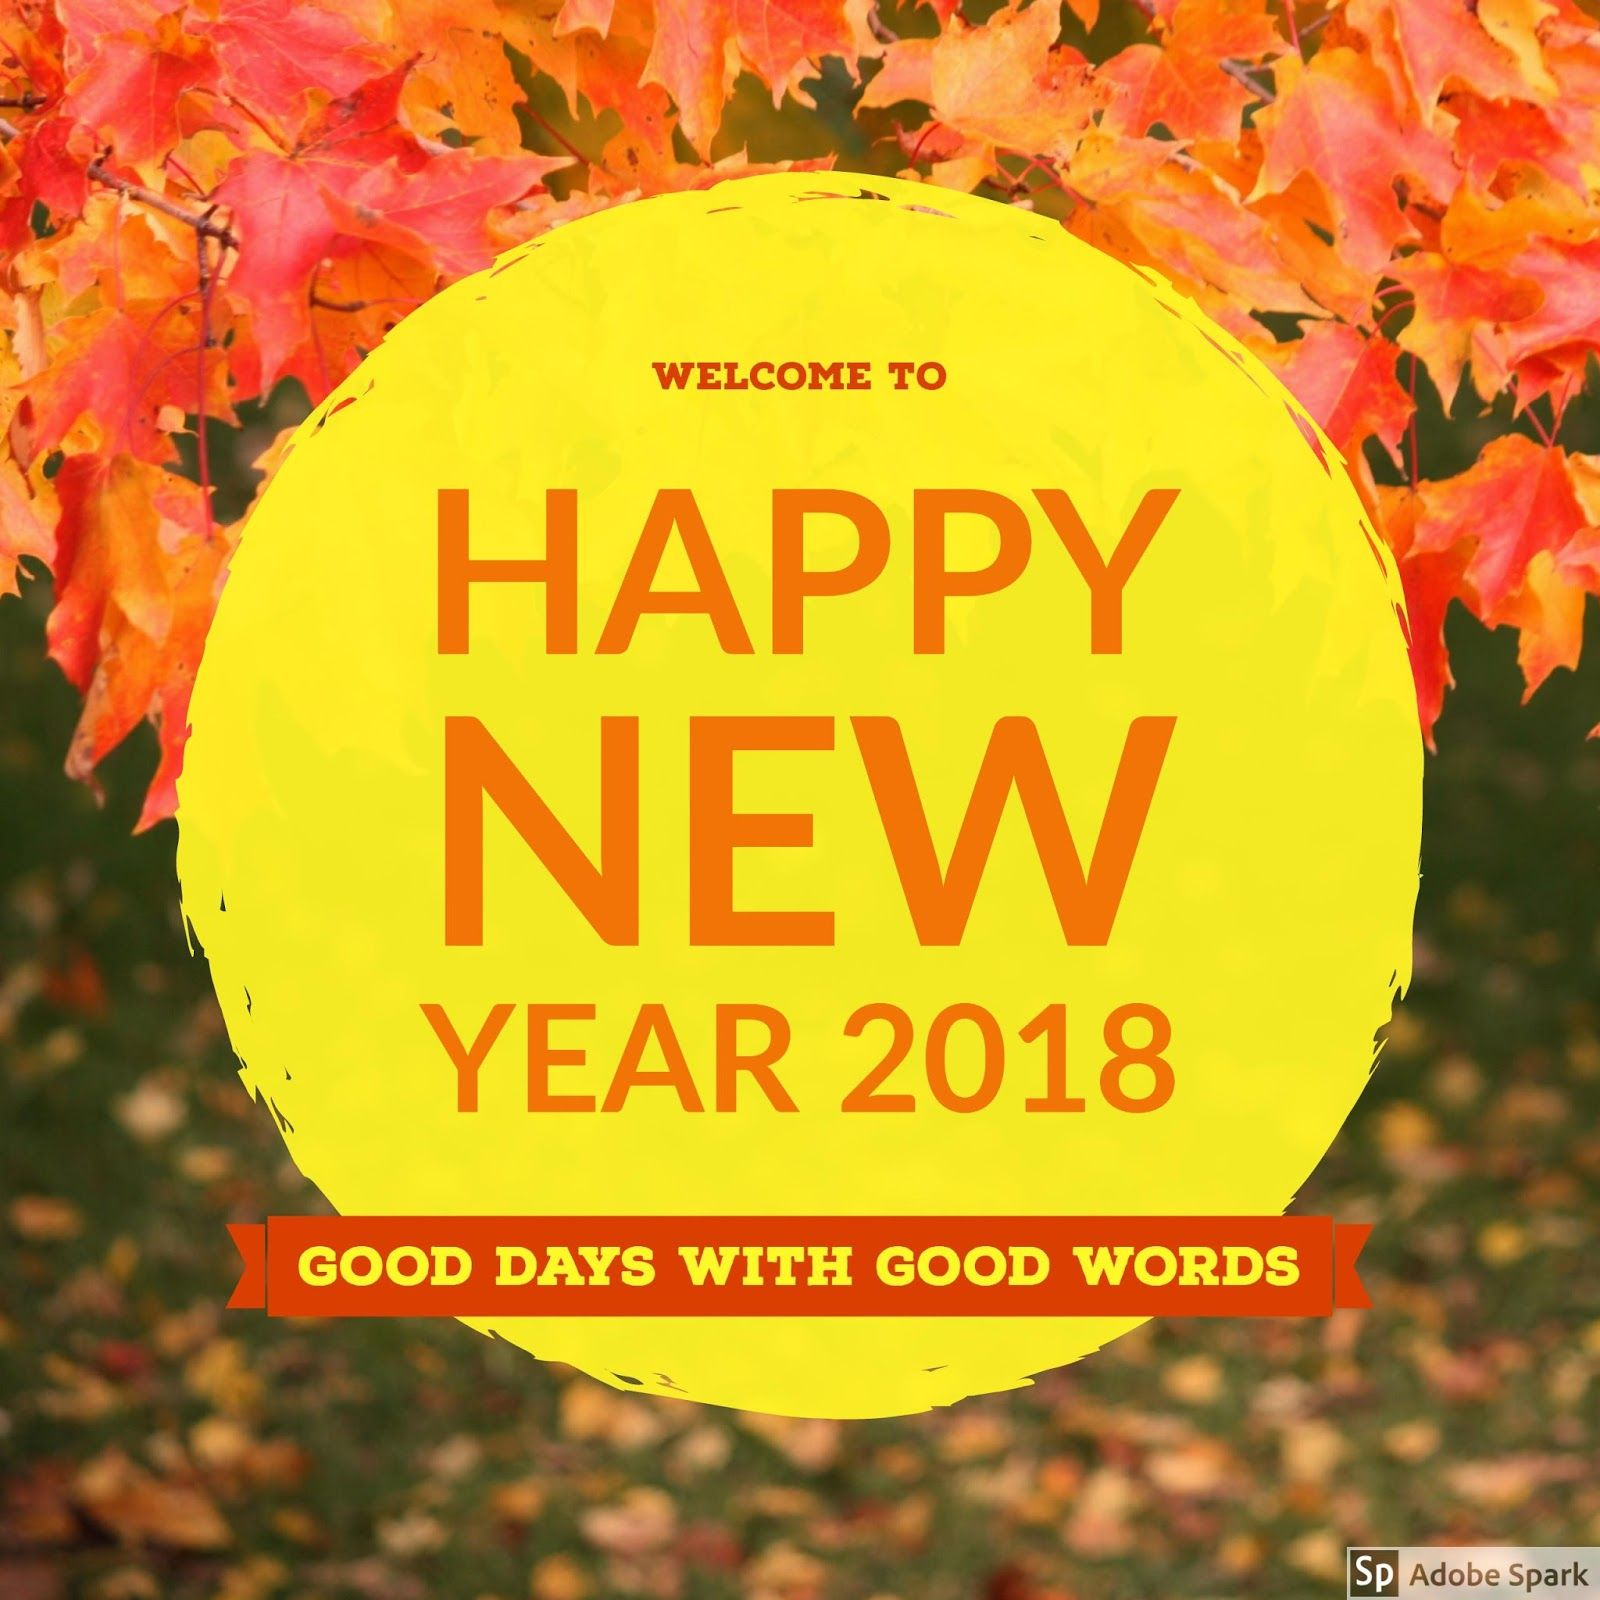 Welcome to happy new year 2018 good days with good words good welcome to happy new year 2018 good days with good words kristyandbryce Choice Image